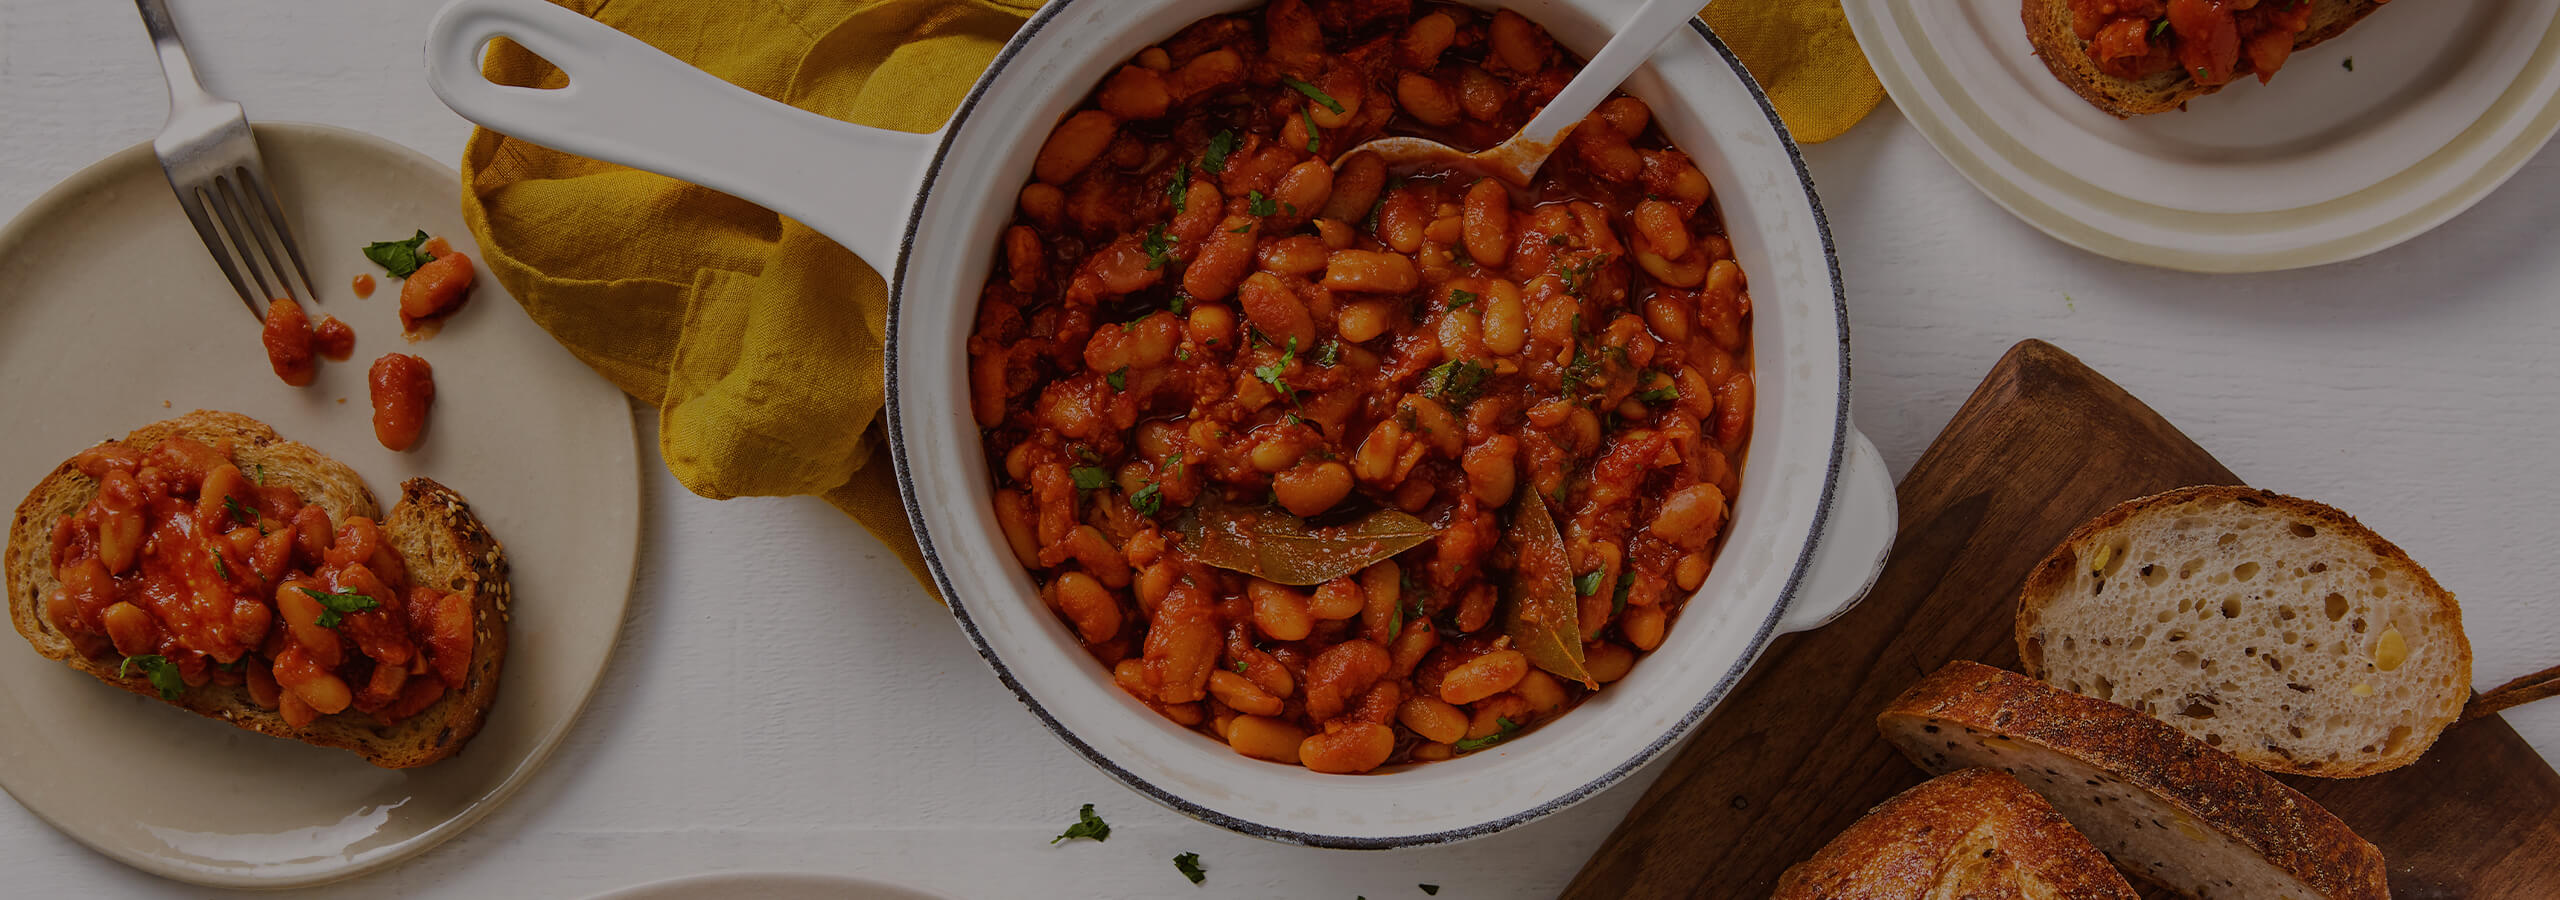 Slow Cooked Baked Beans